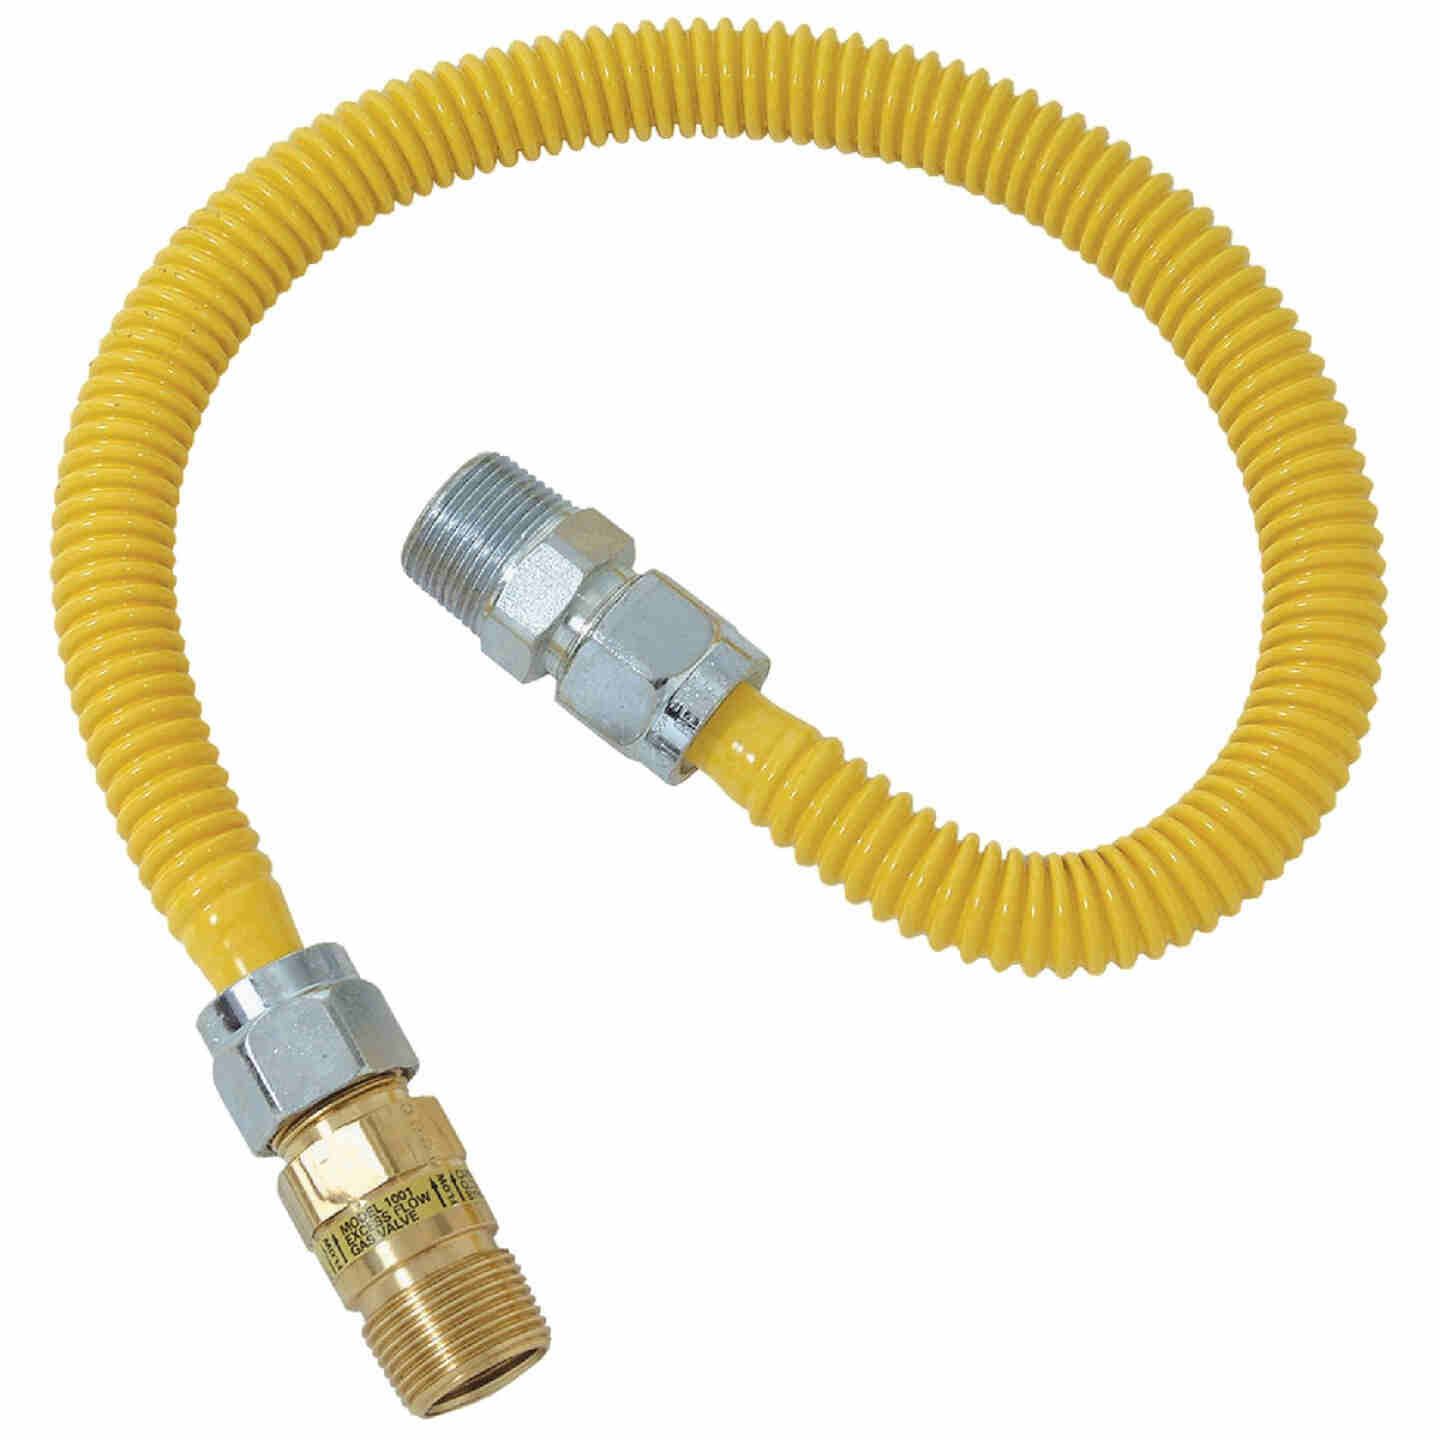 Dormont 5/8 In. OD x 24 In. Coated Stainless Steel Gas Connector, 1/2 In. MIP (Tapped 3/8 In. FIP) x 1/2 In. MIP SmartSense Image 1